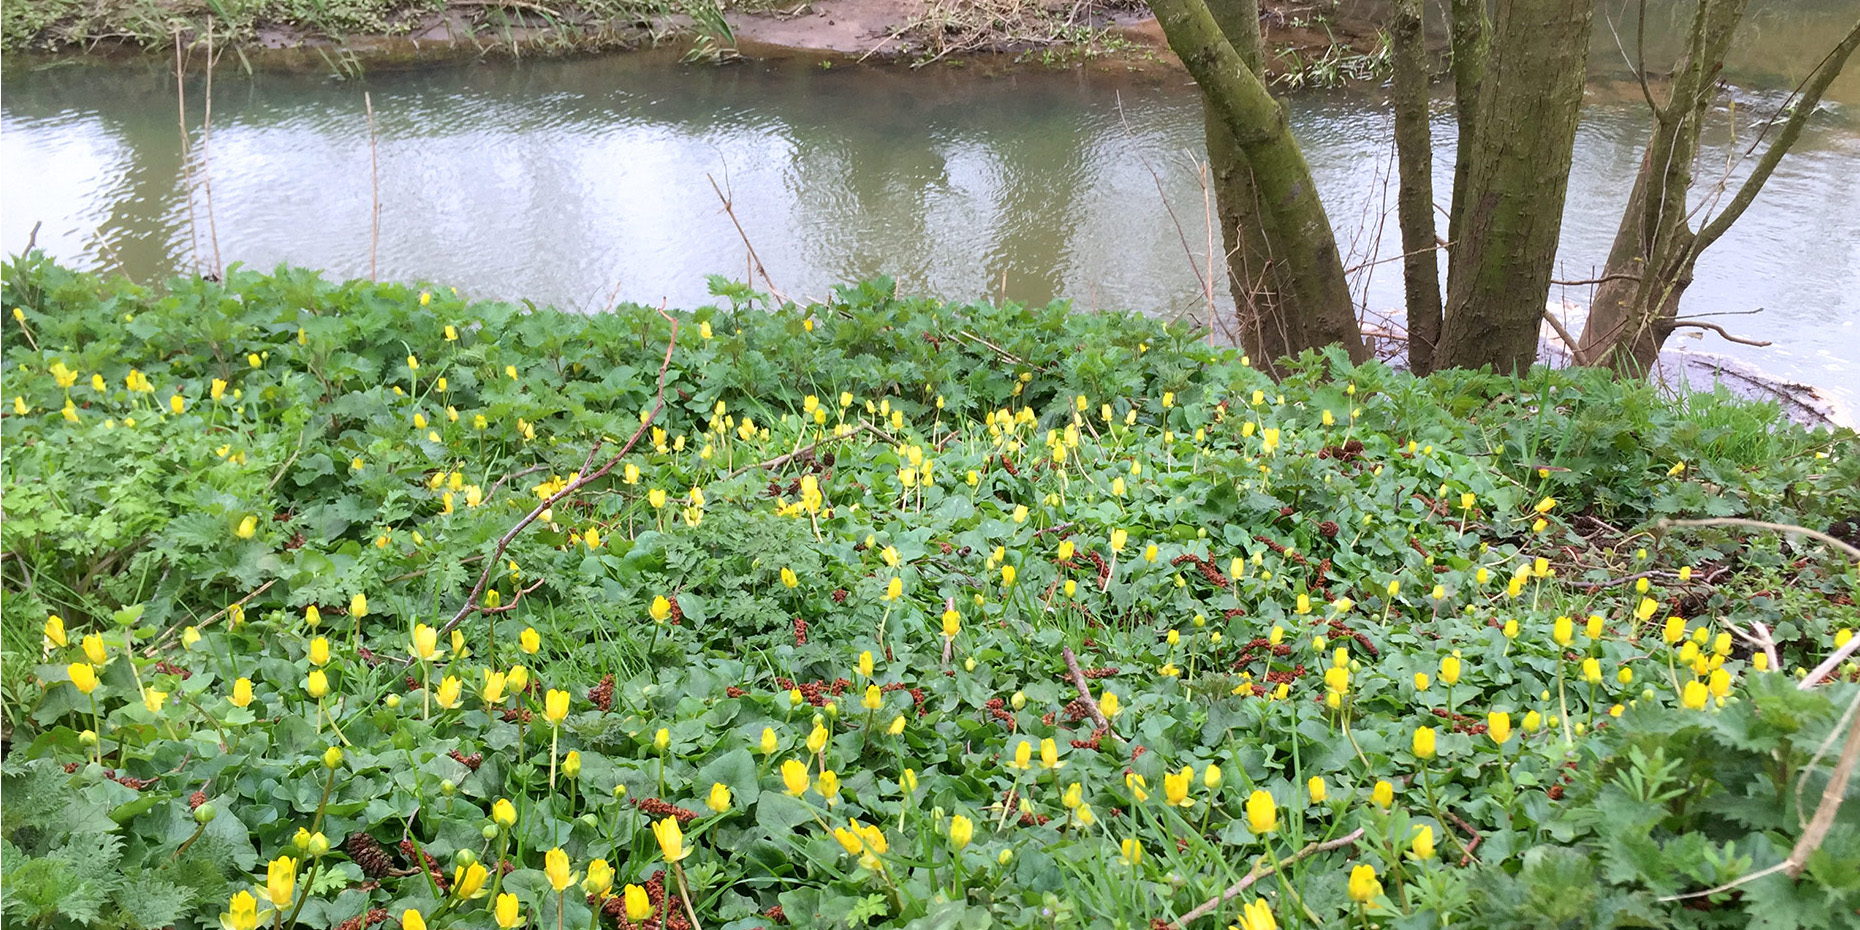 Mile 25 by Marion Gaze banks of the River Blythe covered in carpet of green plants with yellow flowers